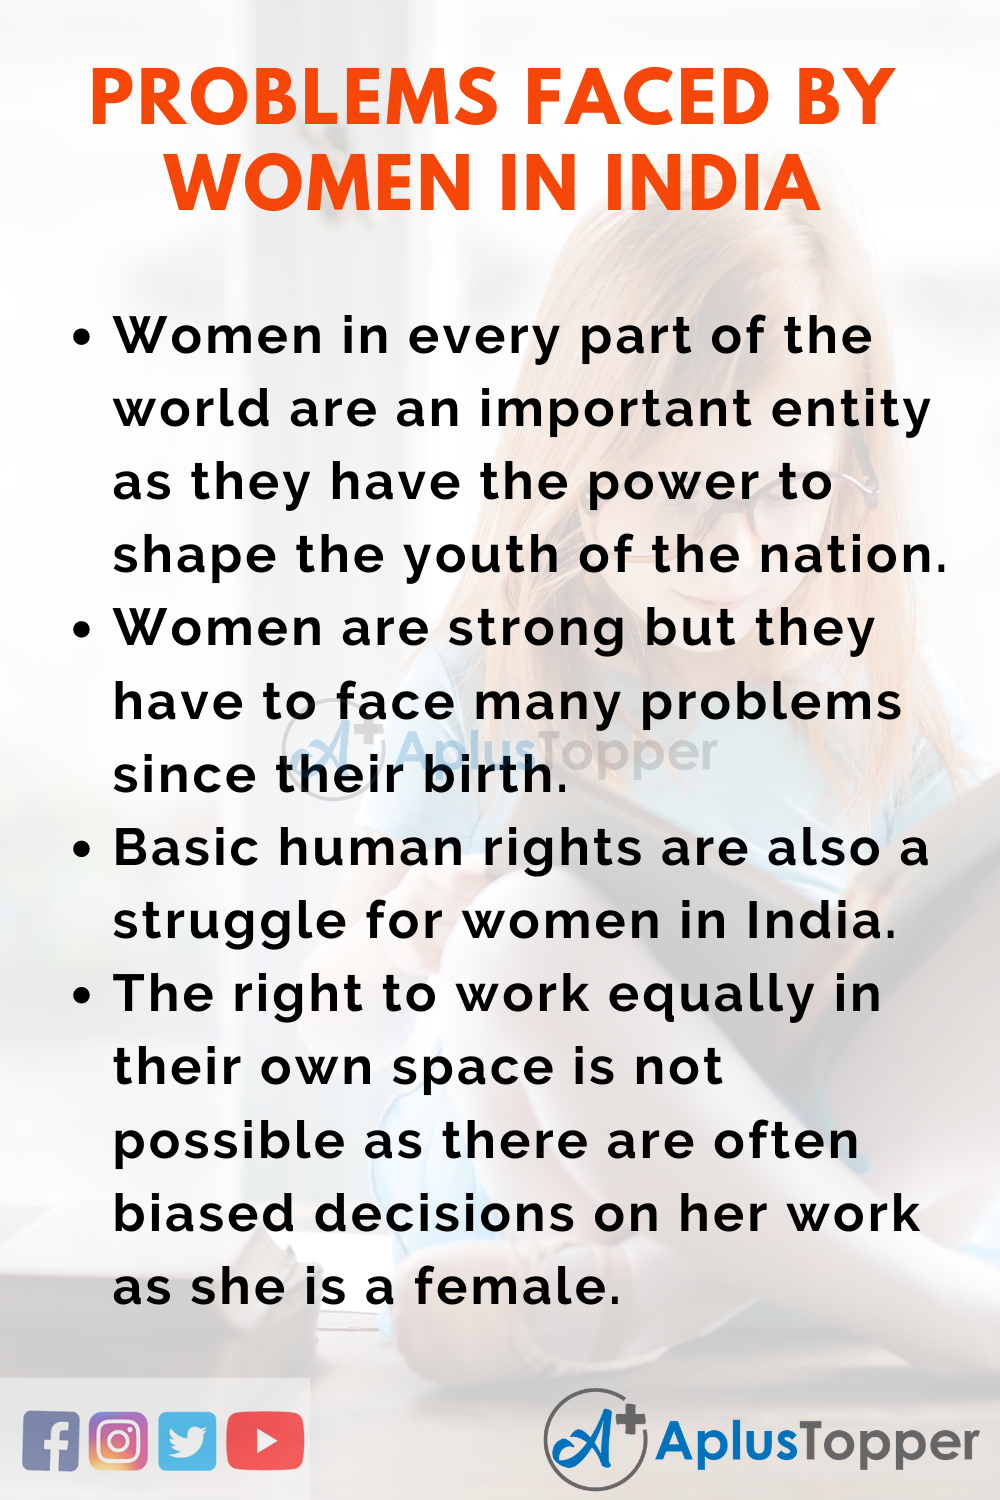 Issues and Problems Faced by Women in India